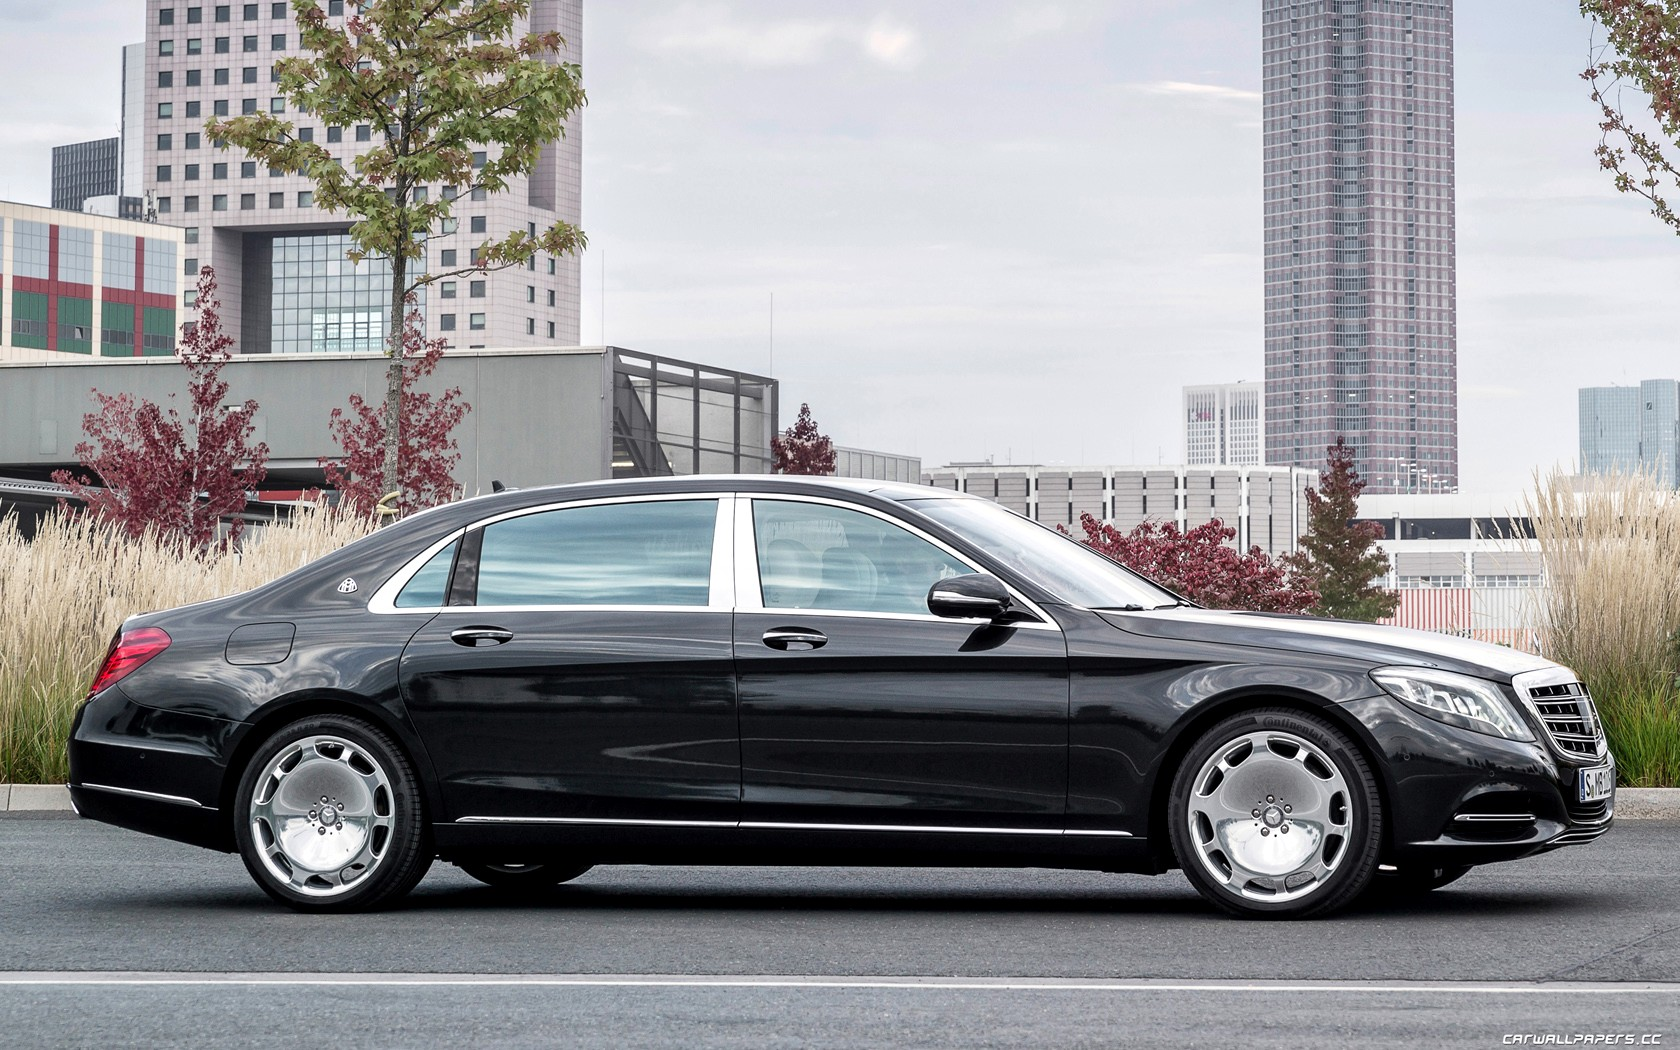 Mercedes Maybach S600 Wallpapers HD Download 1680x1050